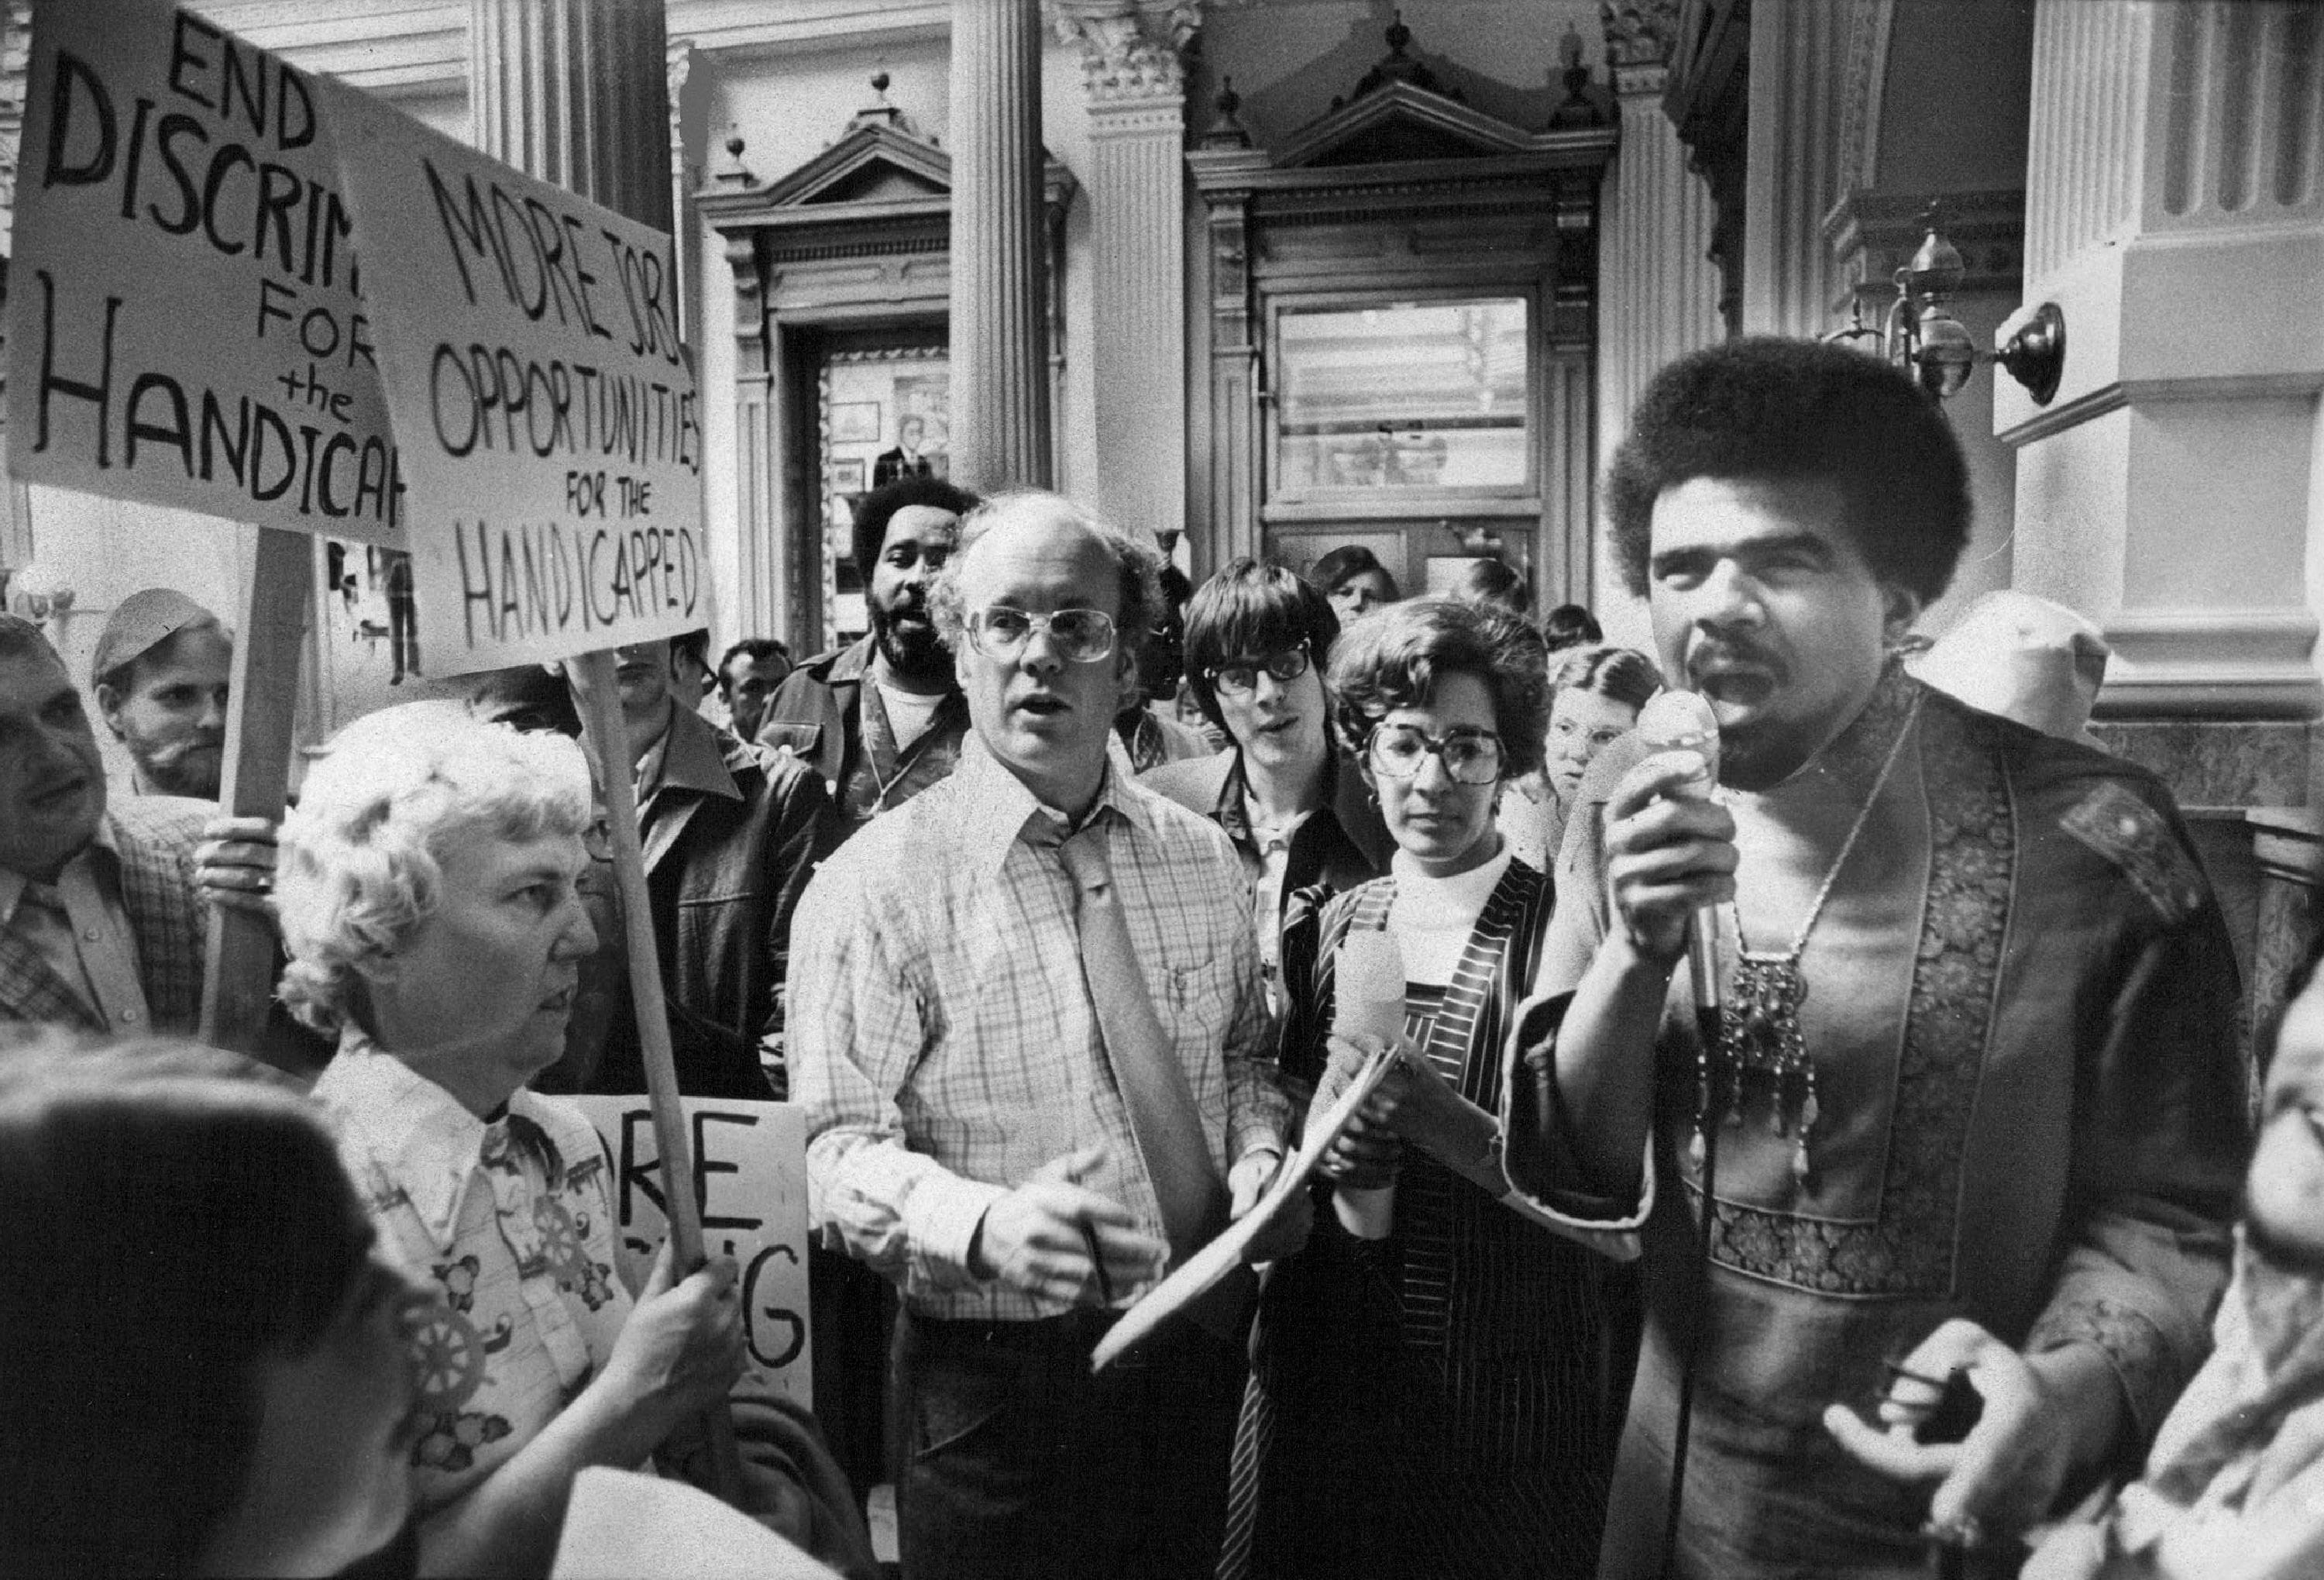 In a vintage photograph, a Black man speaks passionately into a microphone at a rally for disability rights as people around him hold signs demanding equal opportunities and an end to discrimination.